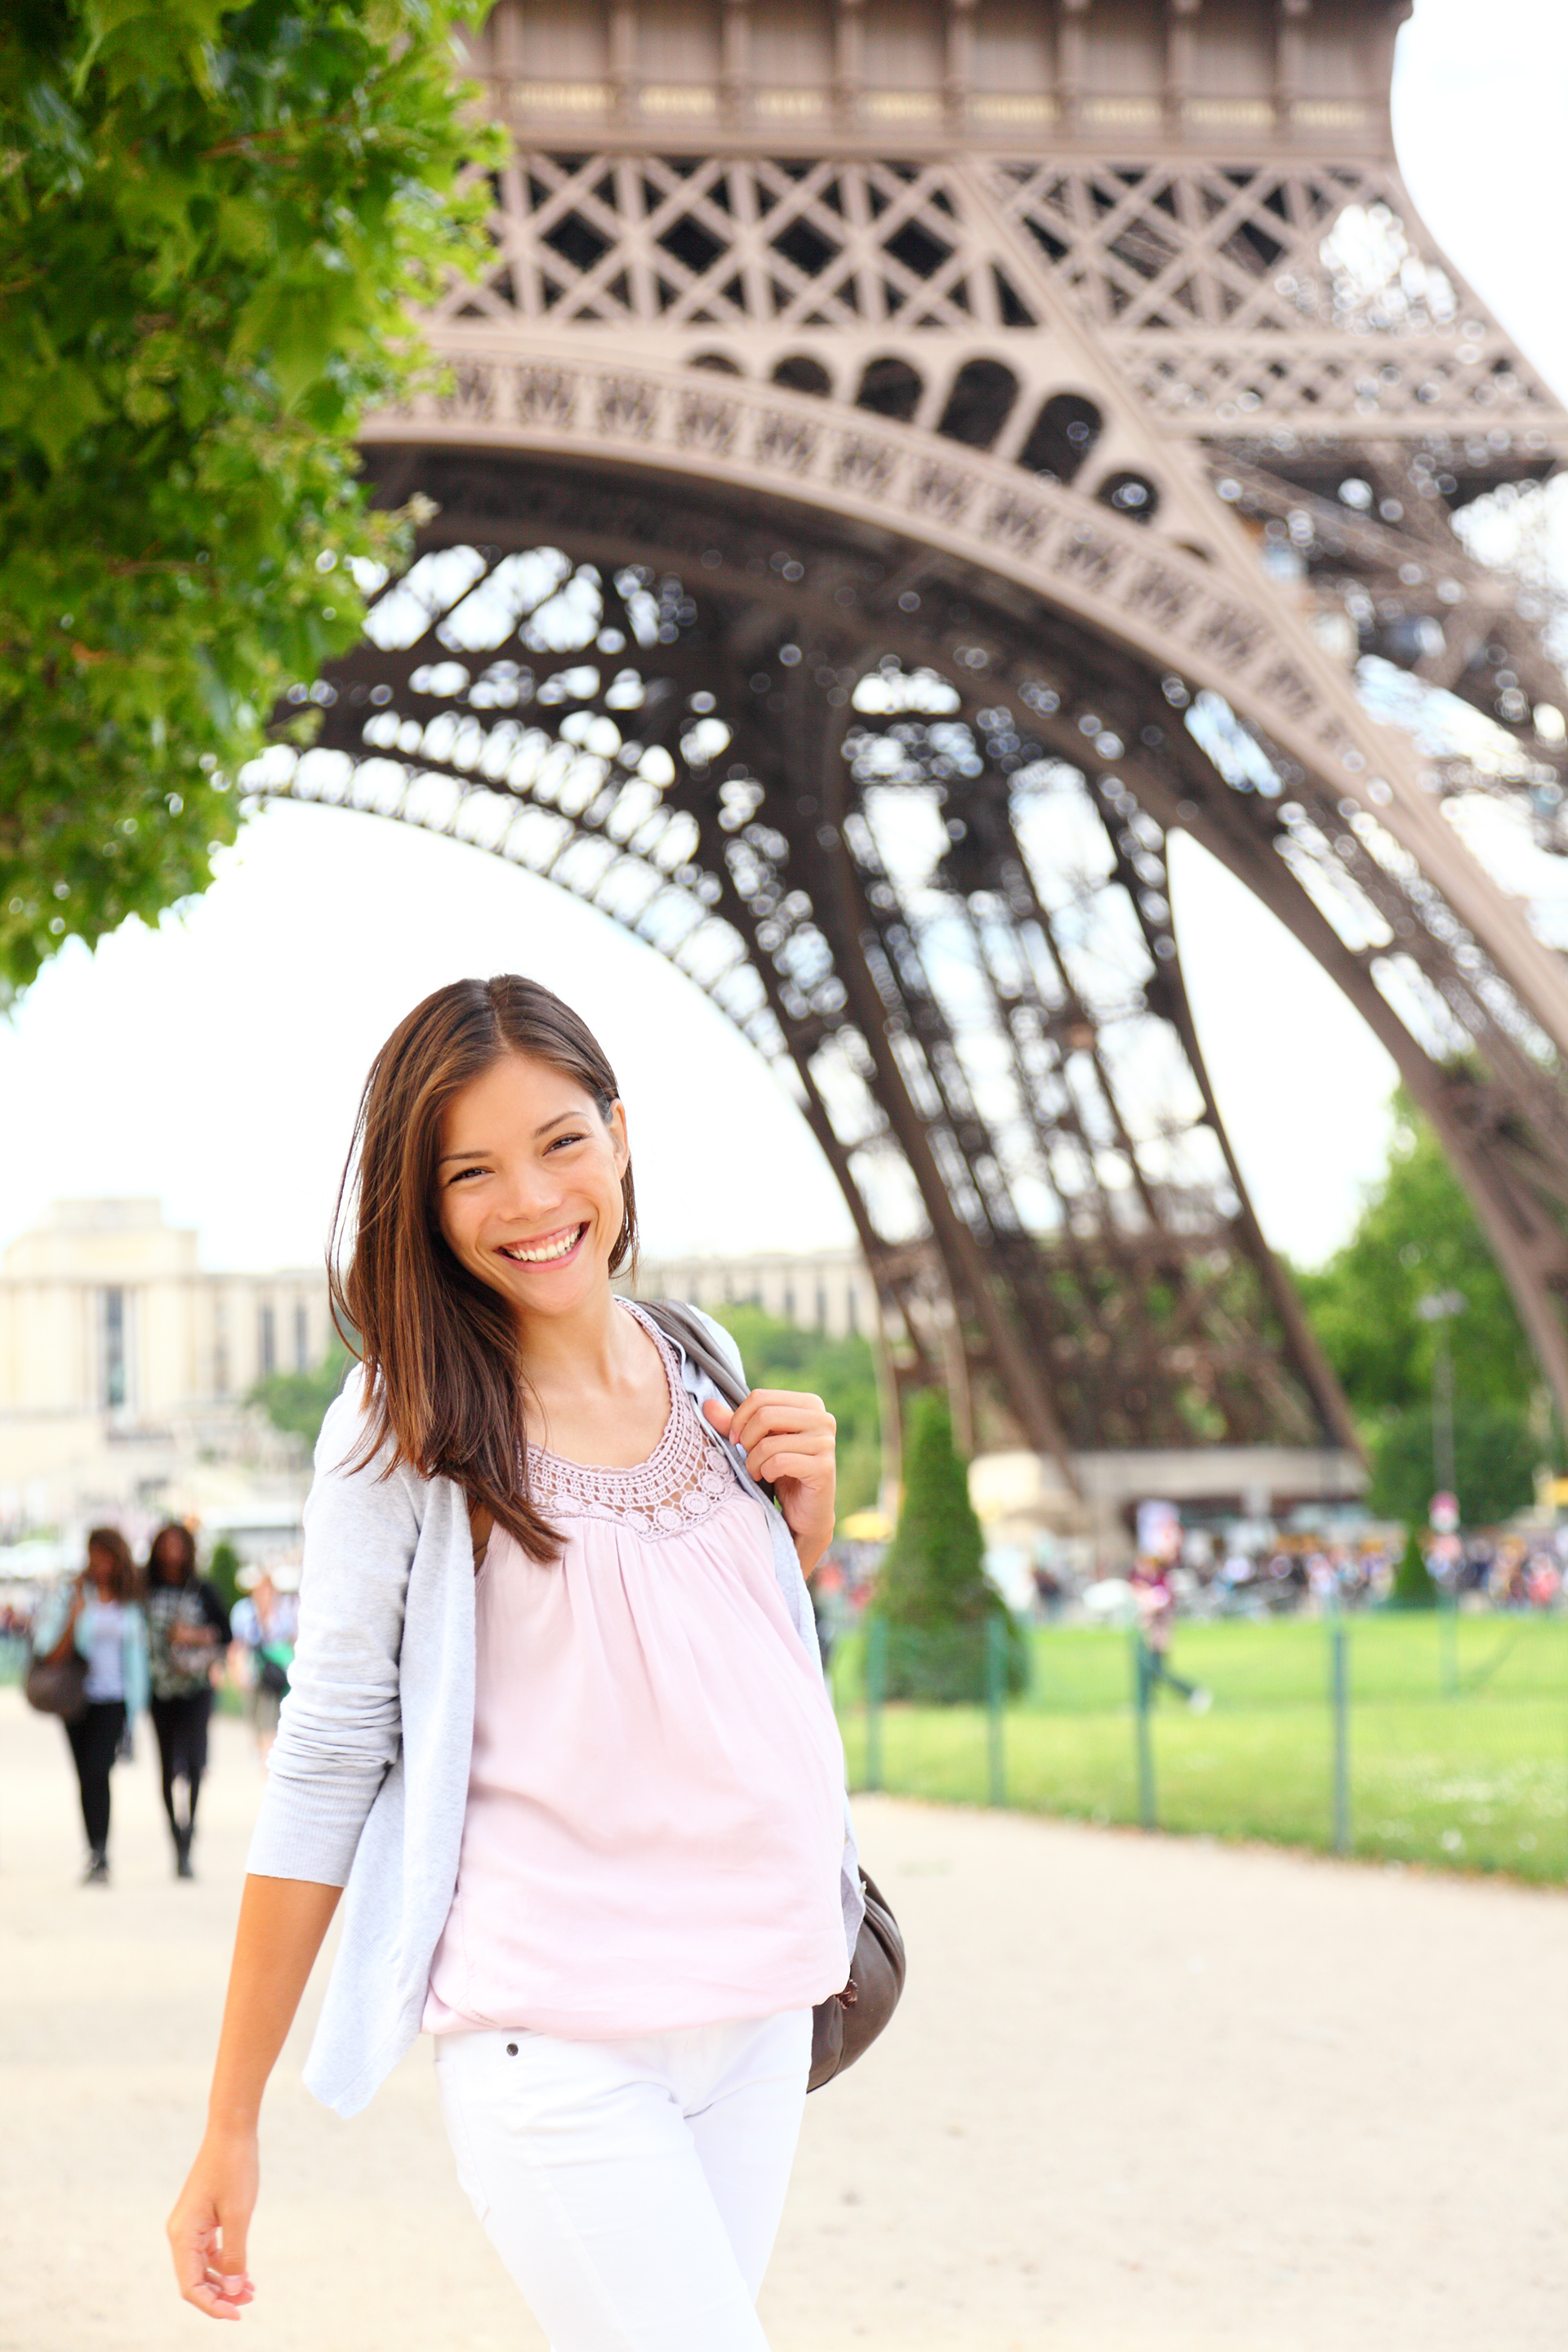 Paris Woman By Eiffel Tower.jpg